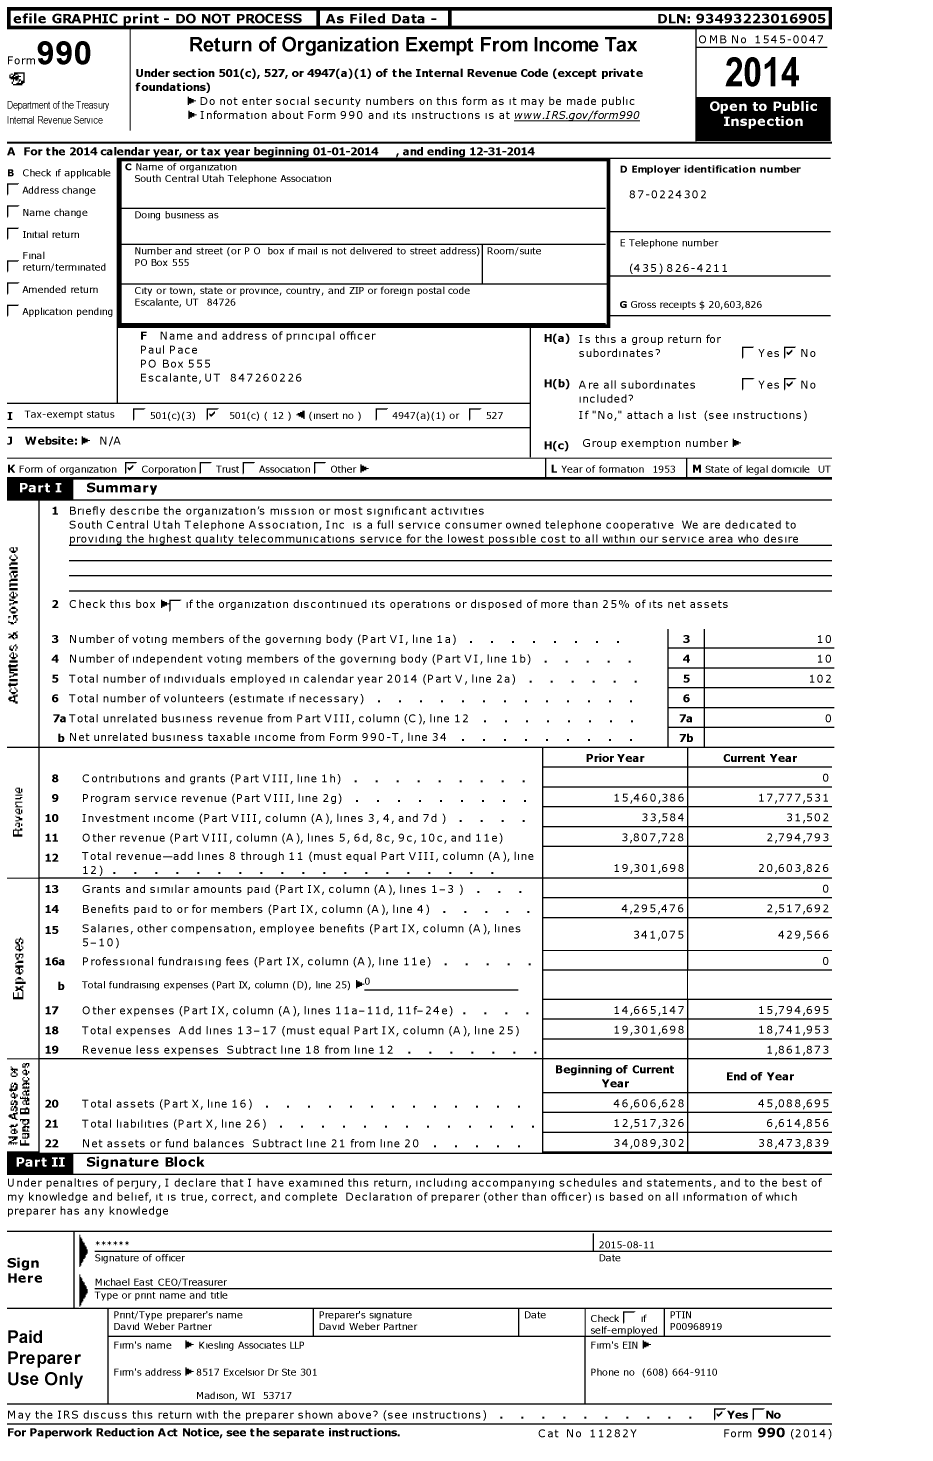 Image of first page of 2014 Form 990O for South Central Utah Telephone Association